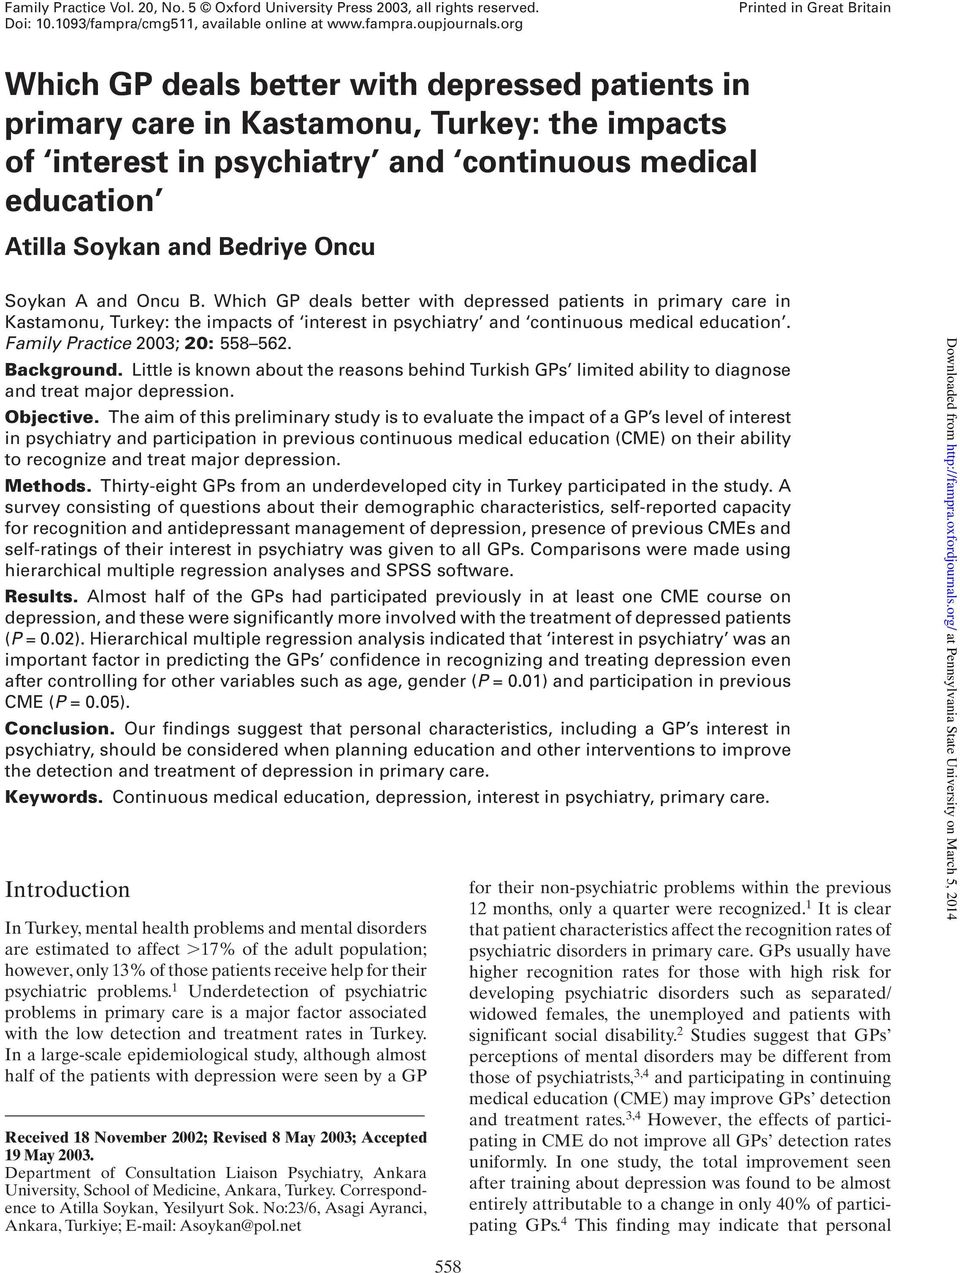 and Bedriye Oncu Soykan A and Oncu B. Which GP deals better with depressed patients in primary care in Kastamonu, Turkey: the impacts of interest in psychiatry and continuous medical education.